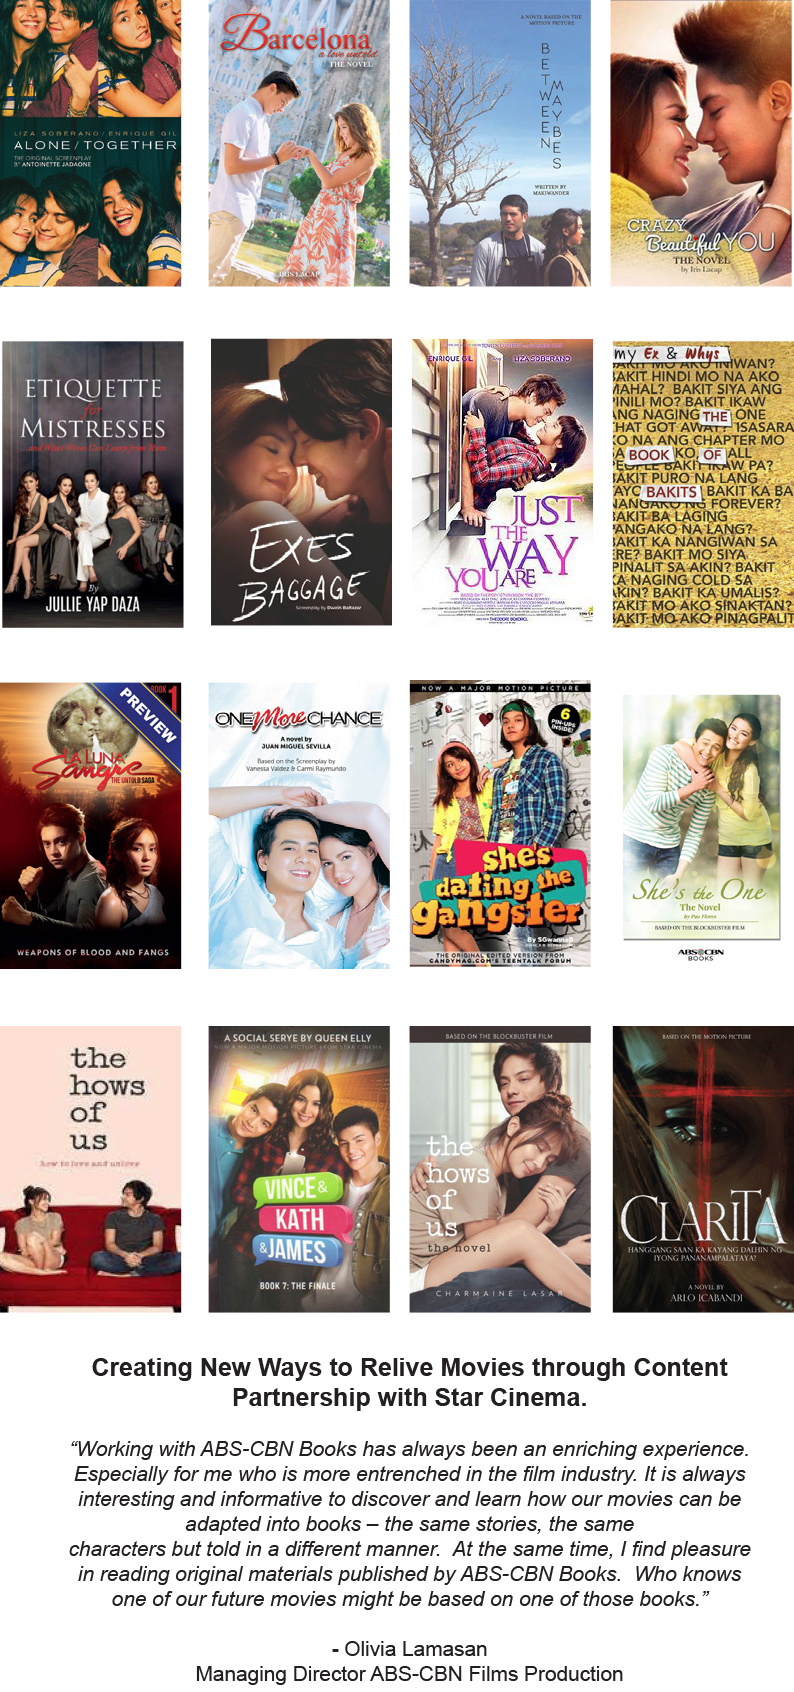 Star Cinema Leads Charge with Book Adaptations of Hit Movies